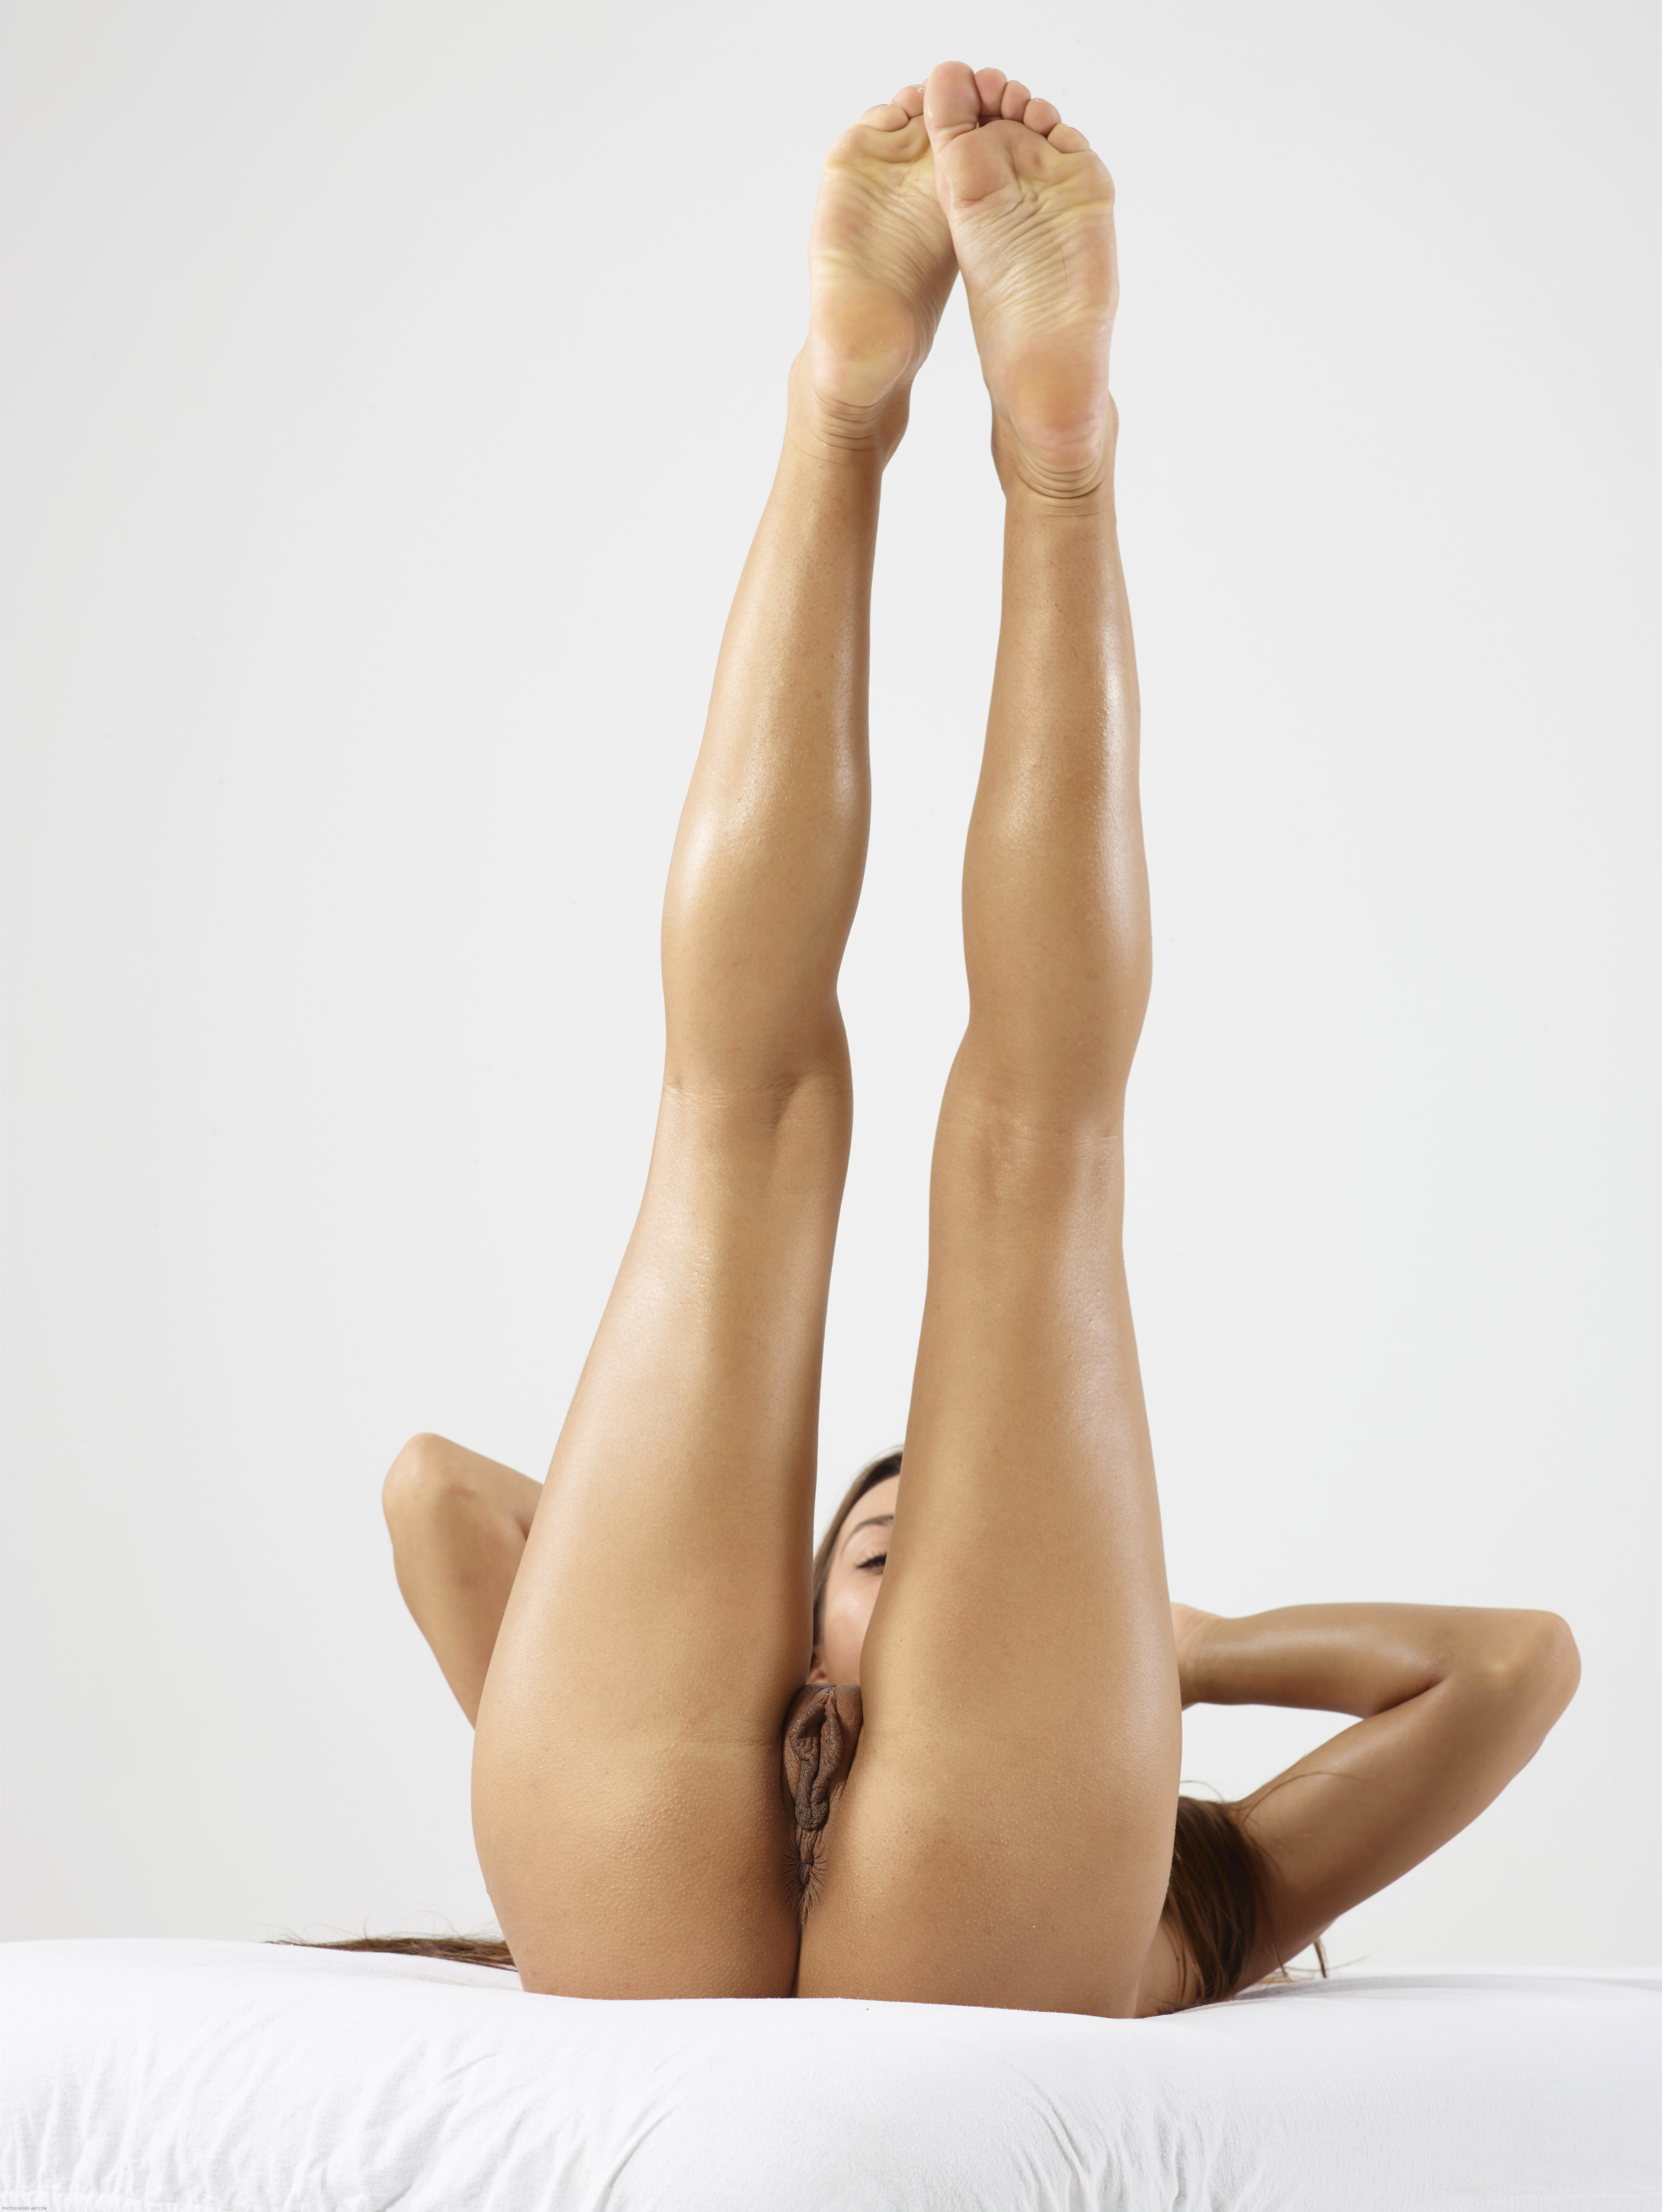 nude-girls-with-legs-up-photo-mix-vol3-40